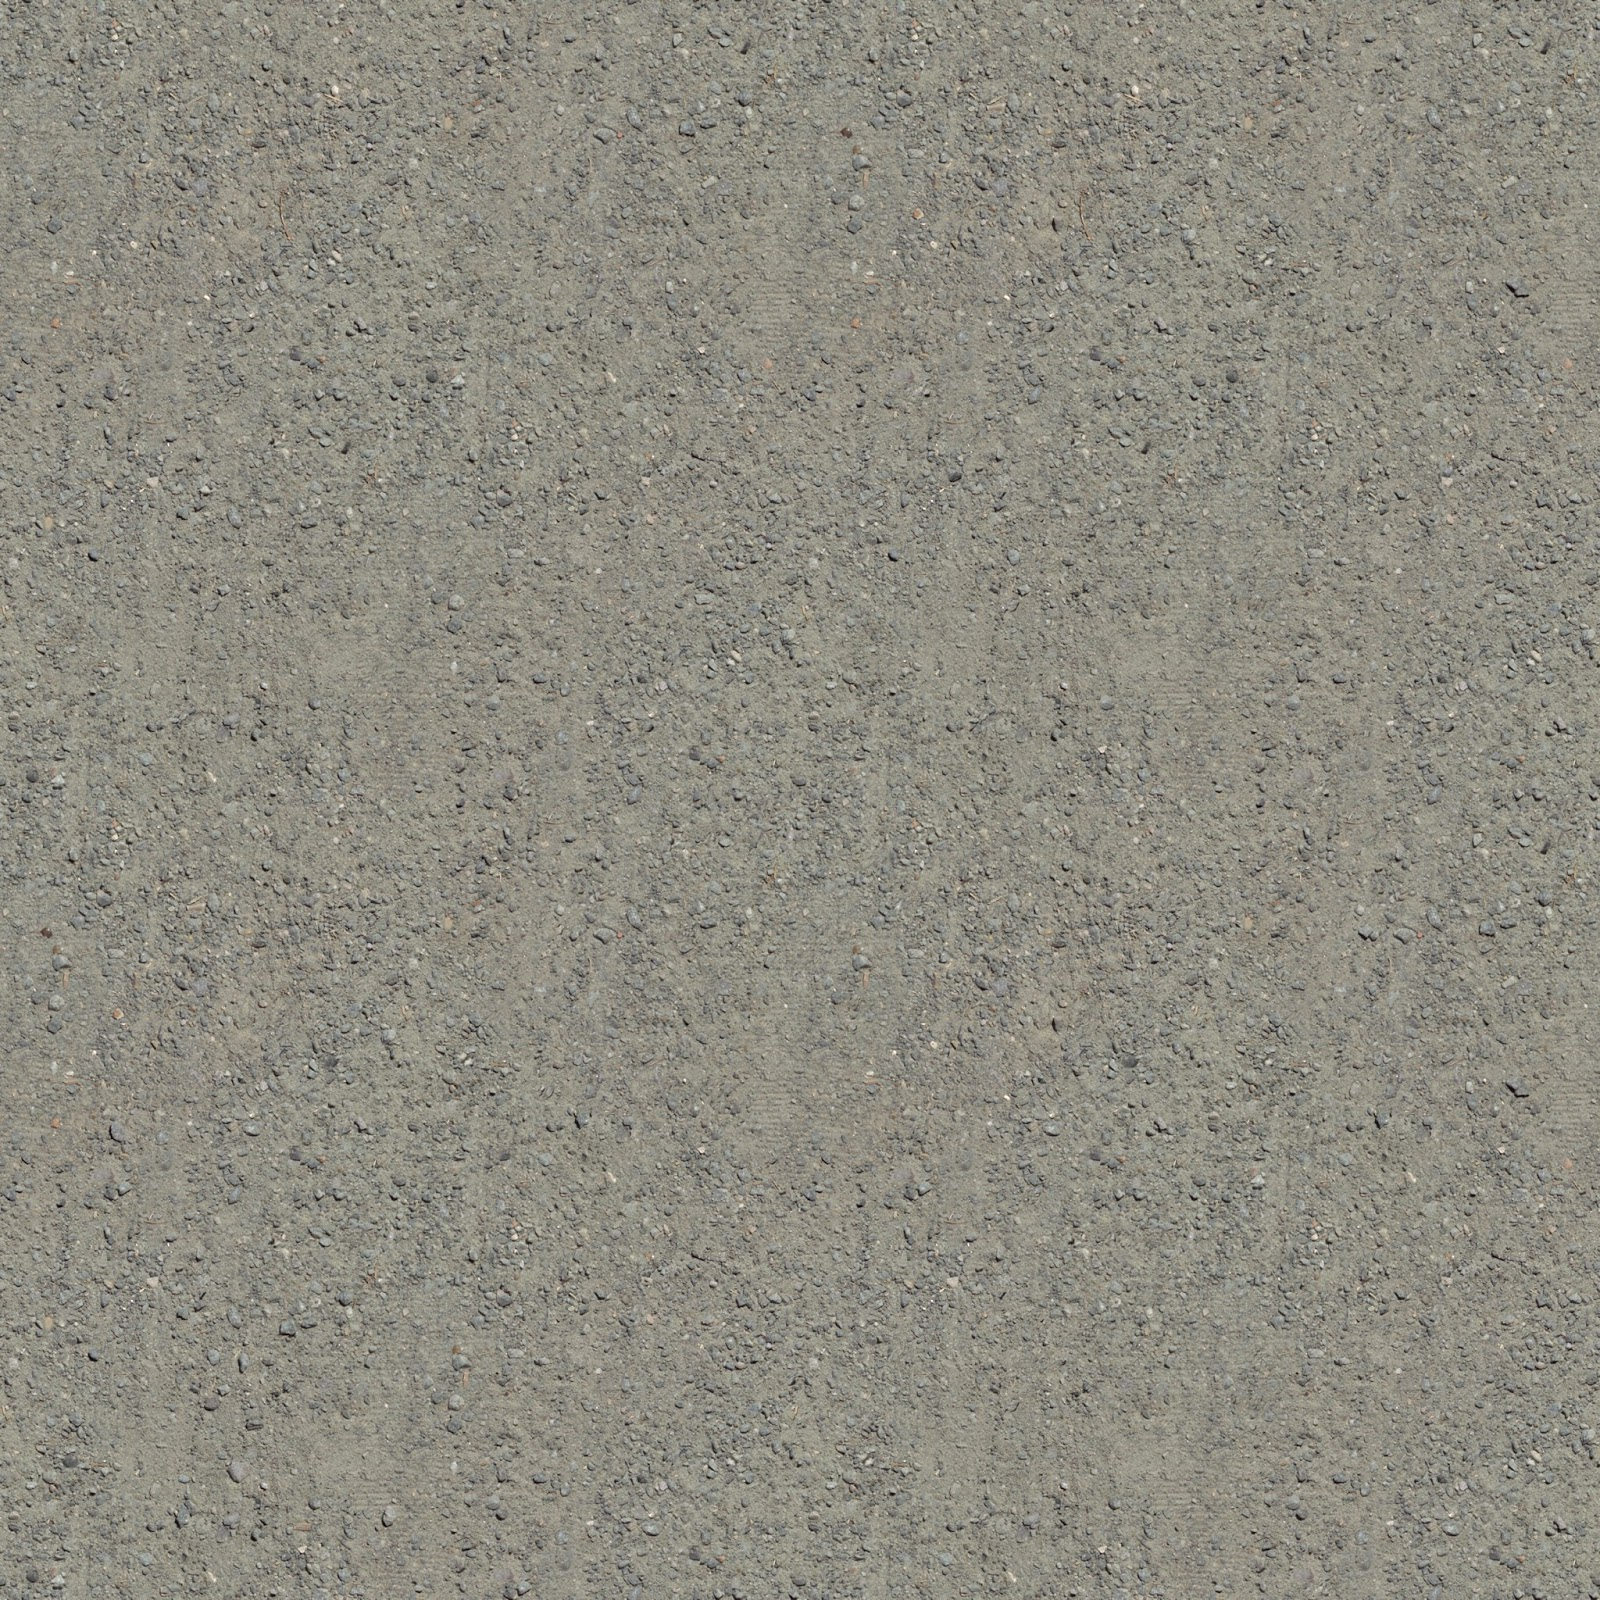 (DIRT 1) seamless soil dust dirt sand ground texture